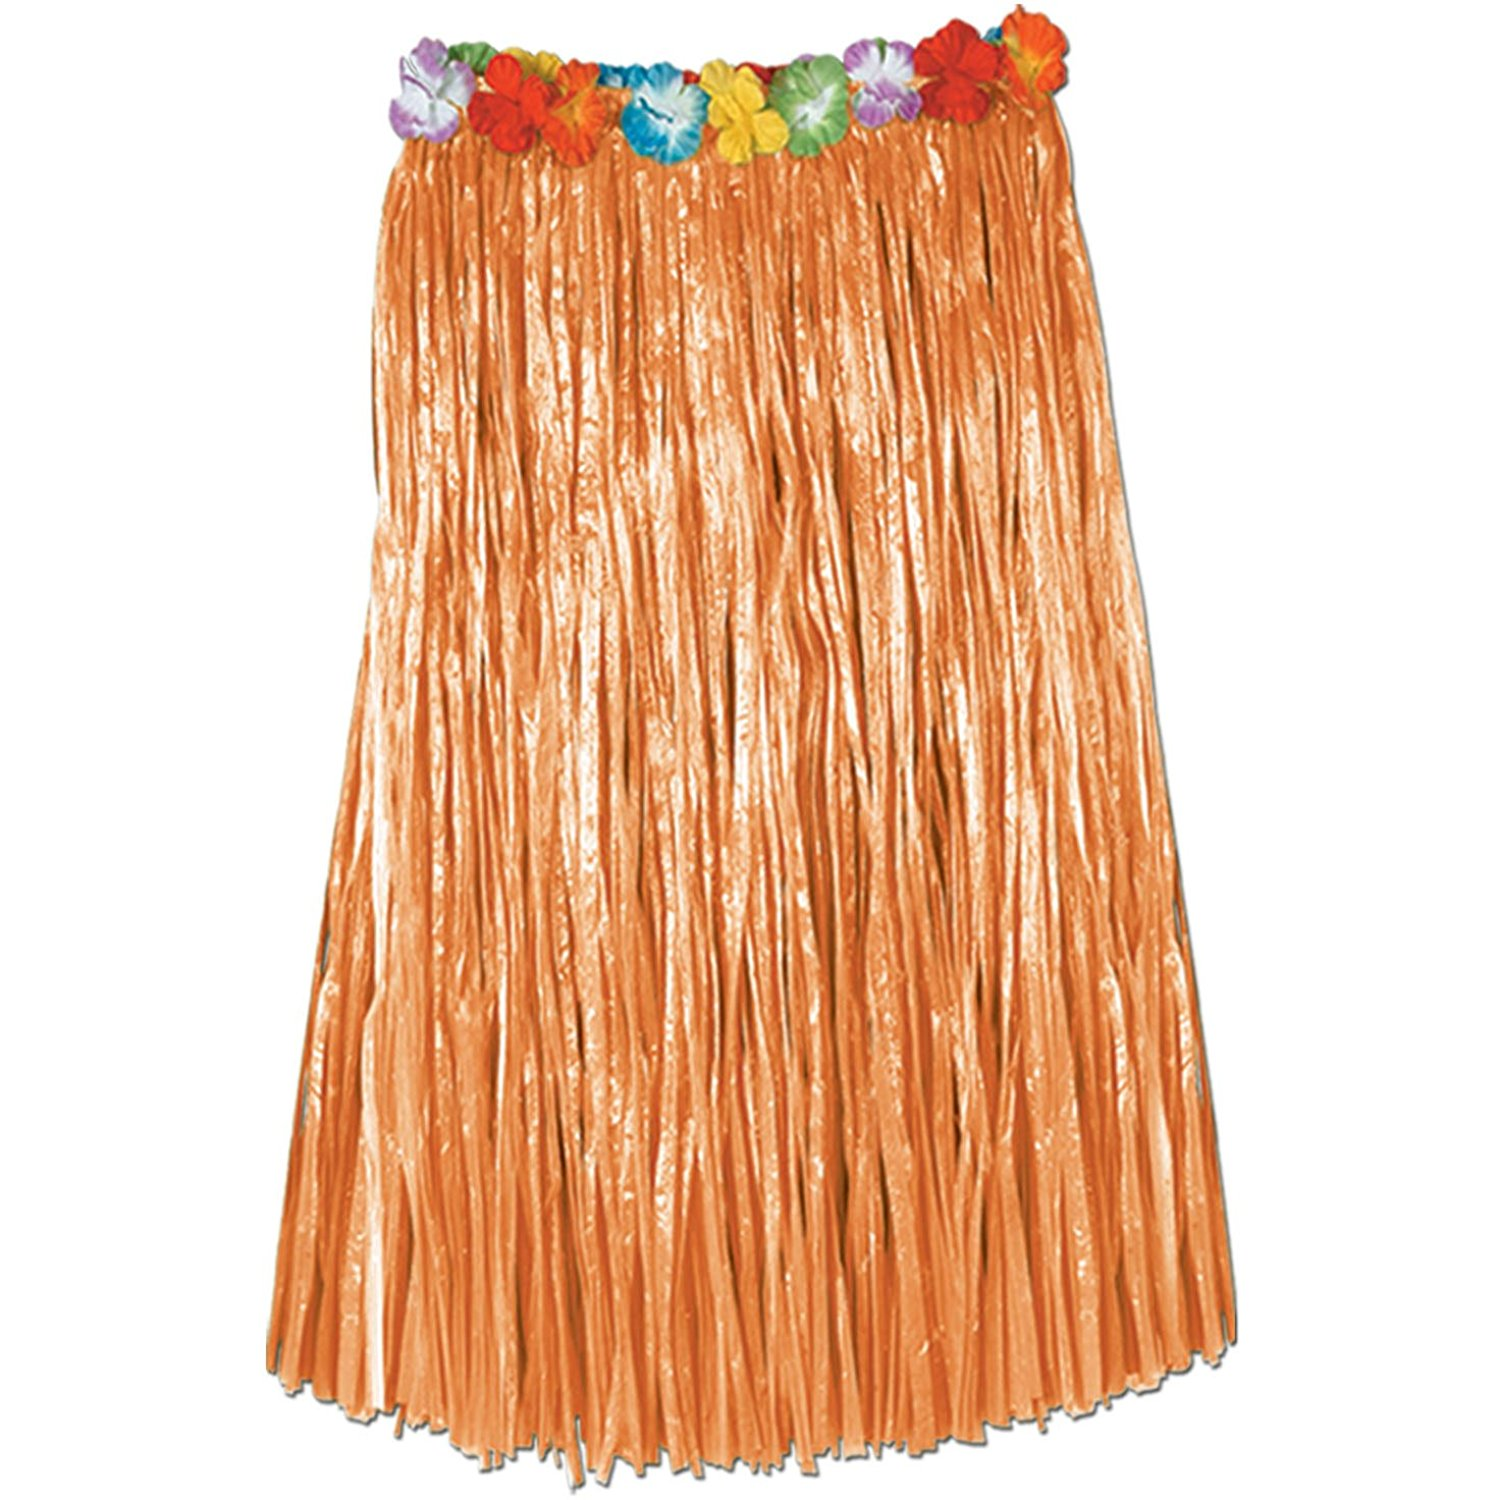 Adult Artificial Grass Hula Skirt w/Floral Waistband (natural) Party Accessory (1 count) (1/Pkg)